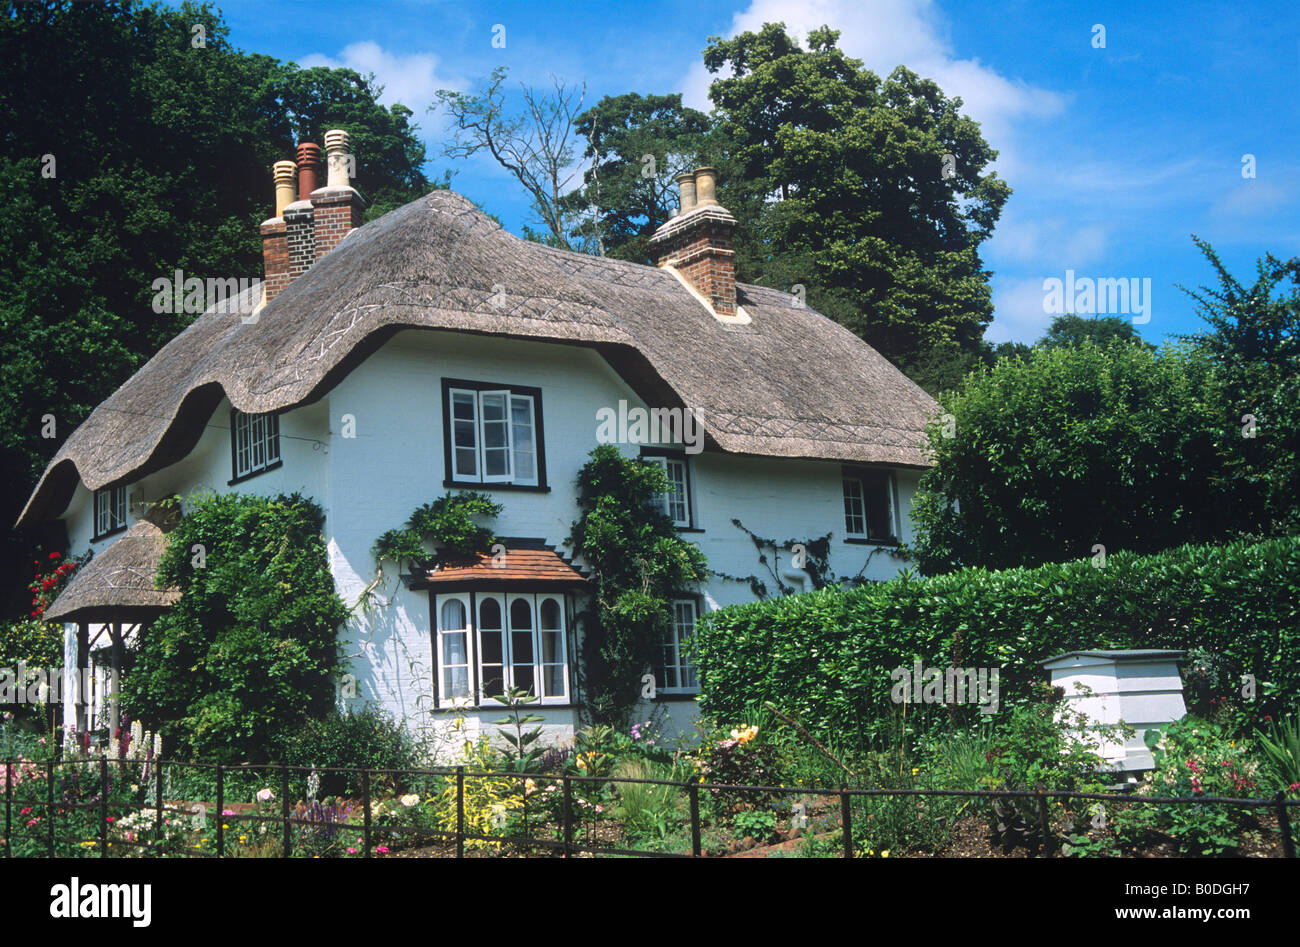 Thatched Cottage, New Forest, Hampshire. - Stock Image